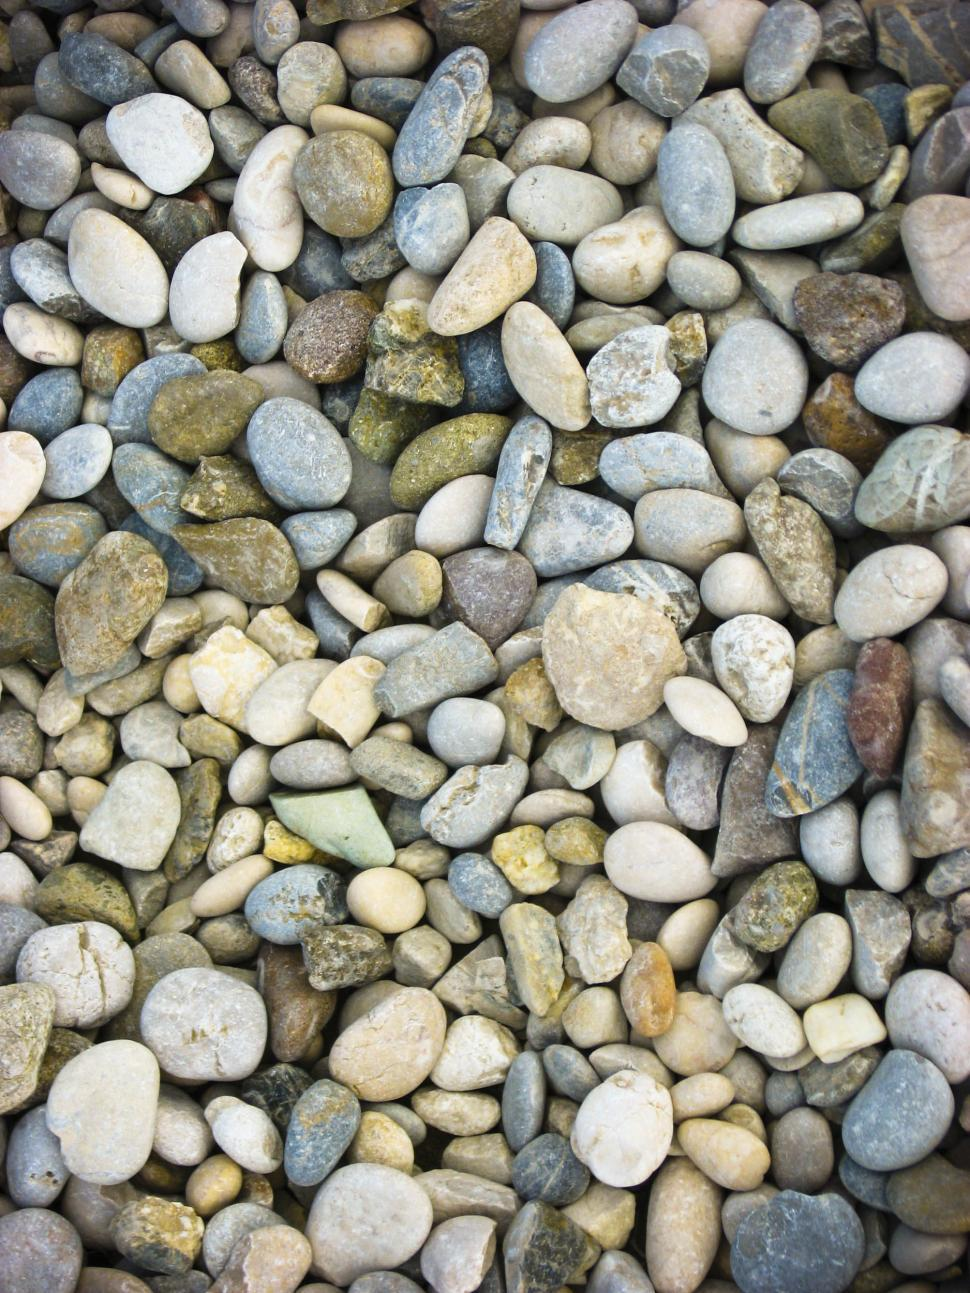 Download Free Stock HD Photo of pebbles Online